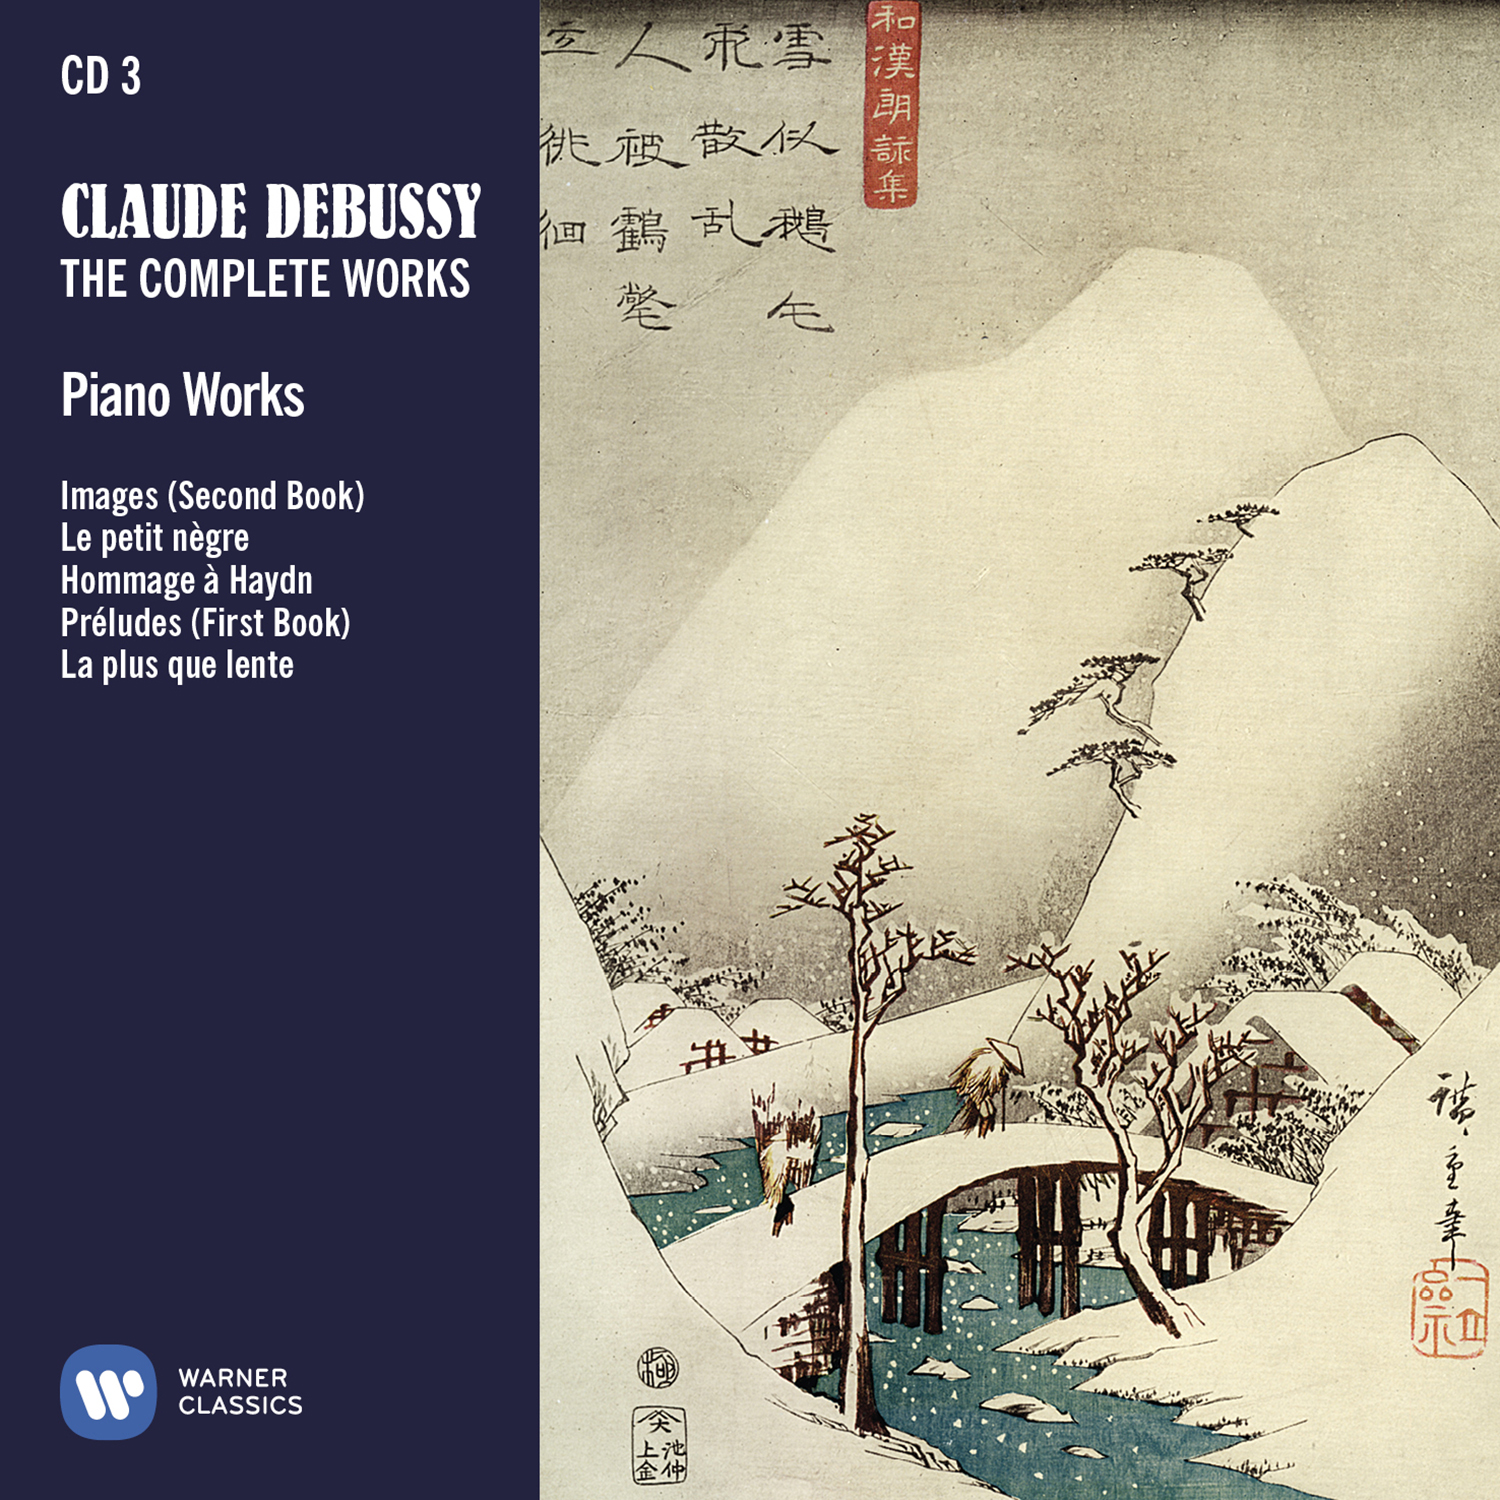 Debussy The complete works - Cover wallet CD3.jpg